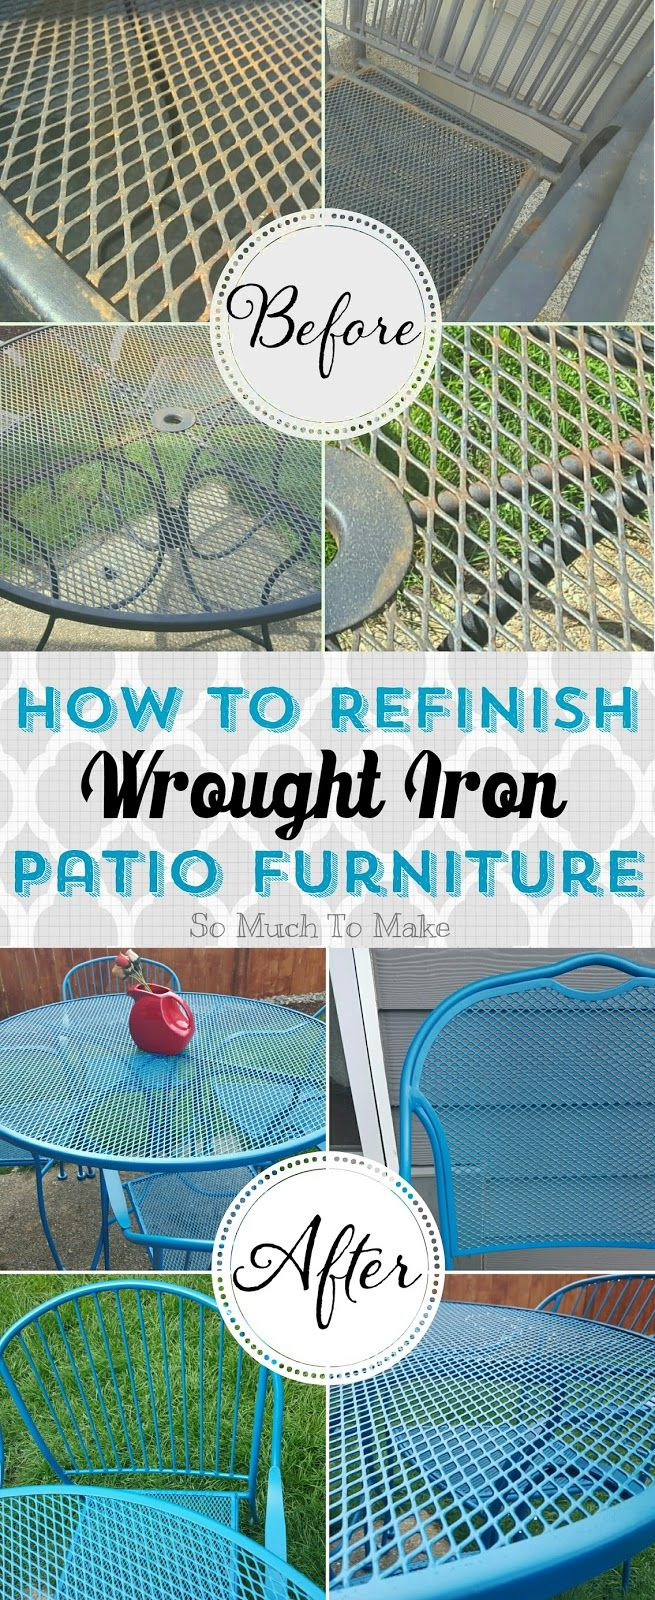 Painted iron patio furniture - How To Refinish Wrought Iron Patio Furniture